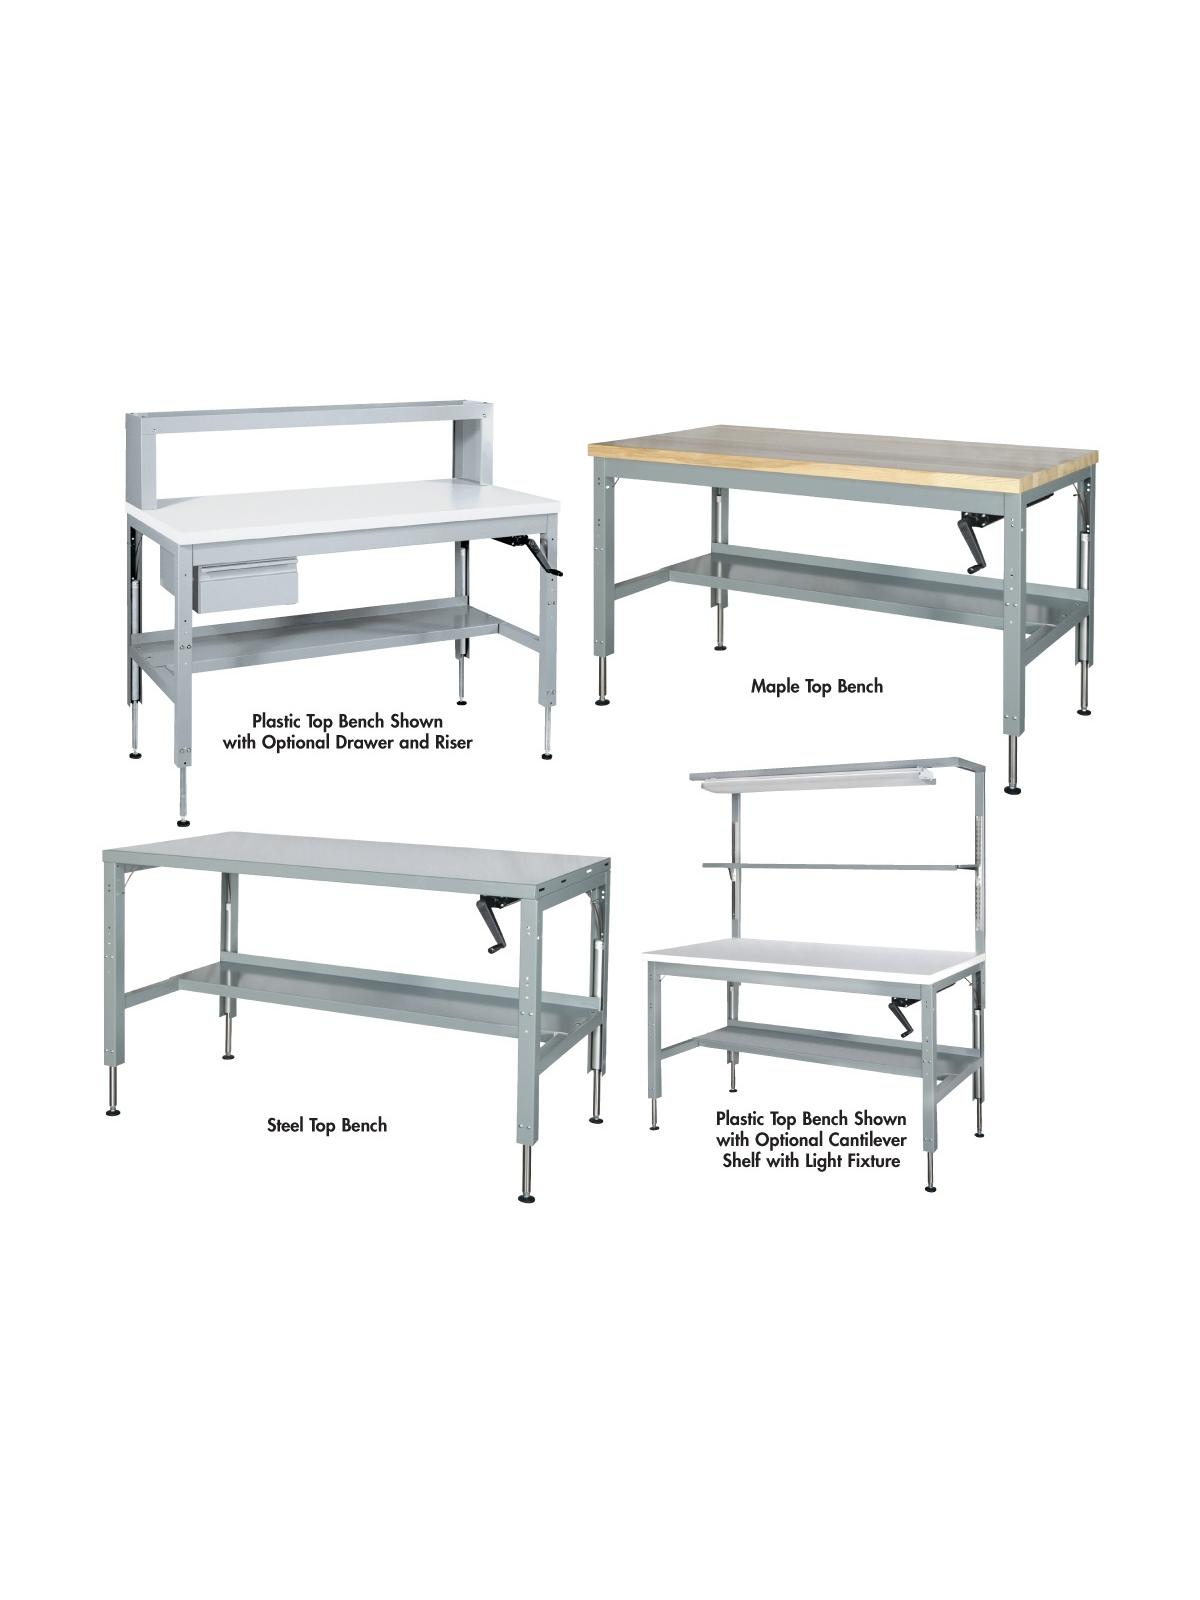 Hydraulic Ergonomic Benches At Nationwide Industrial